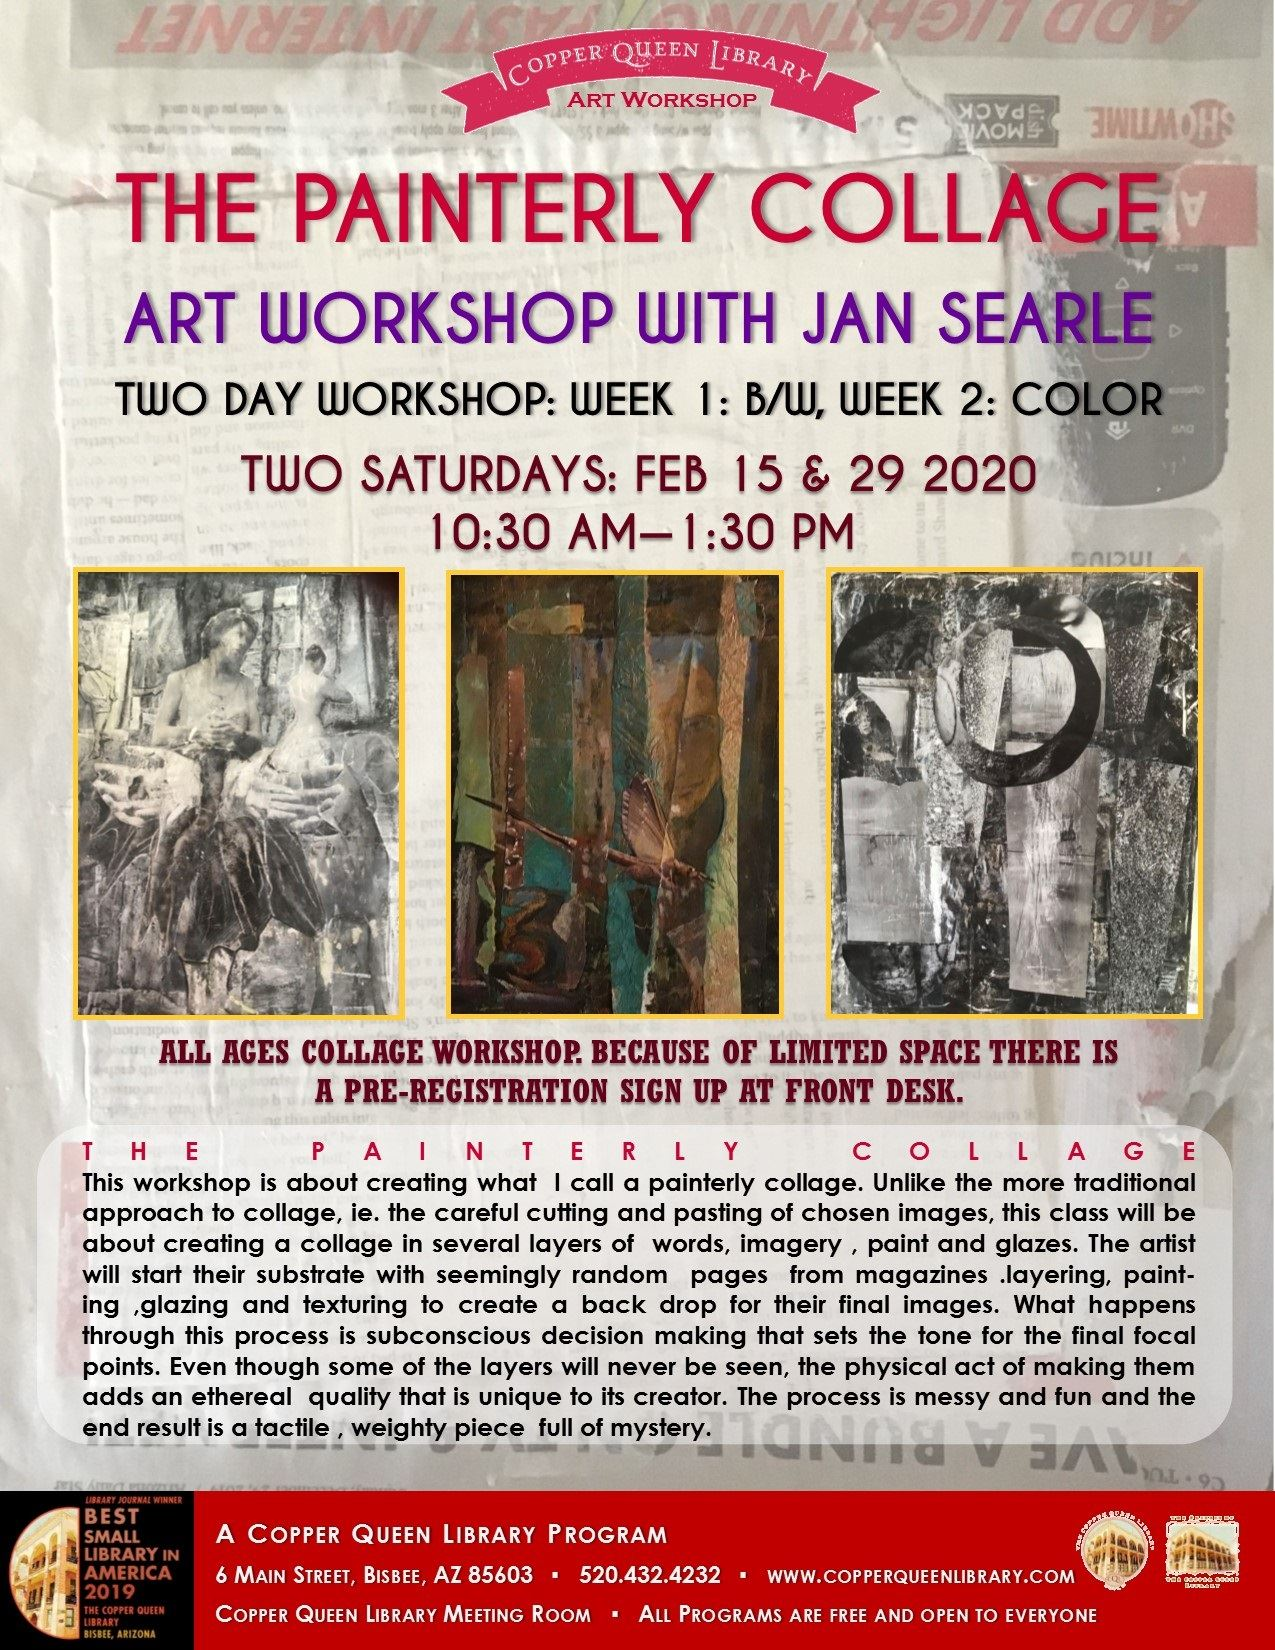 JAN SEARLE COLLAGE WORKSHOP